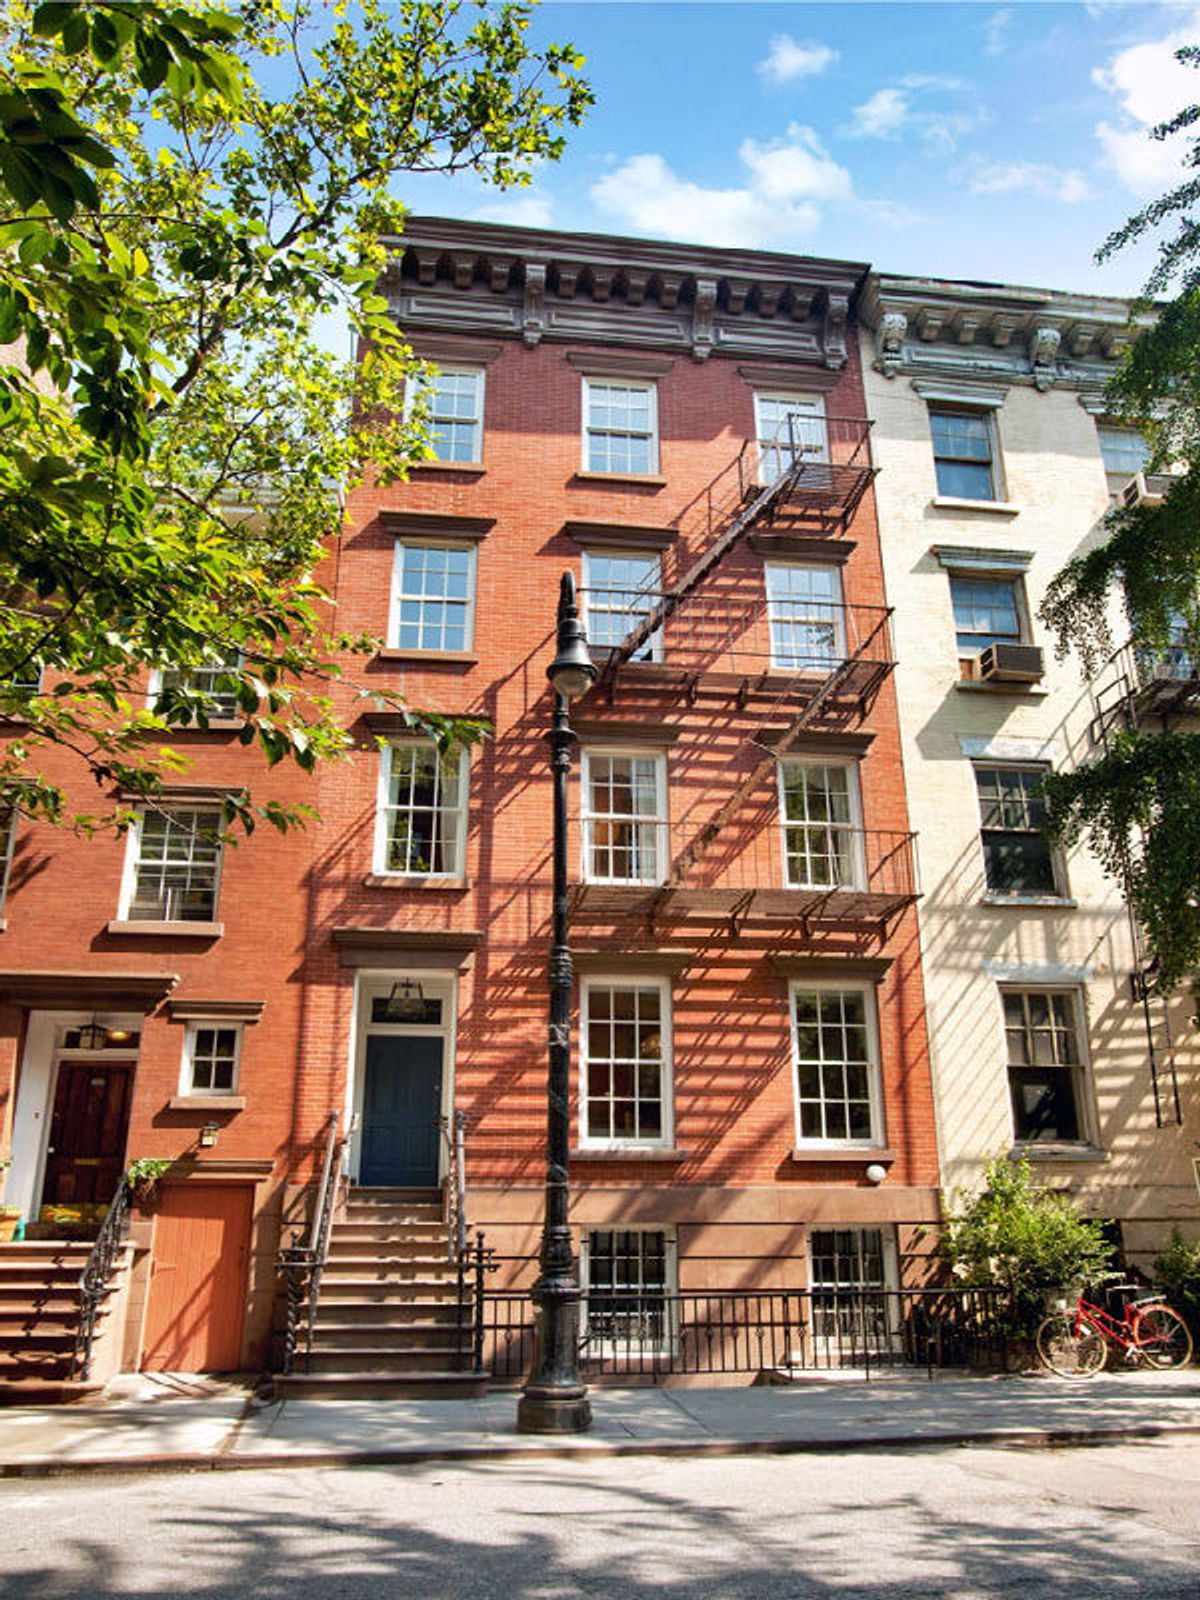 81 Horatio Street, New York NY Townhouse - New York City Real Estate